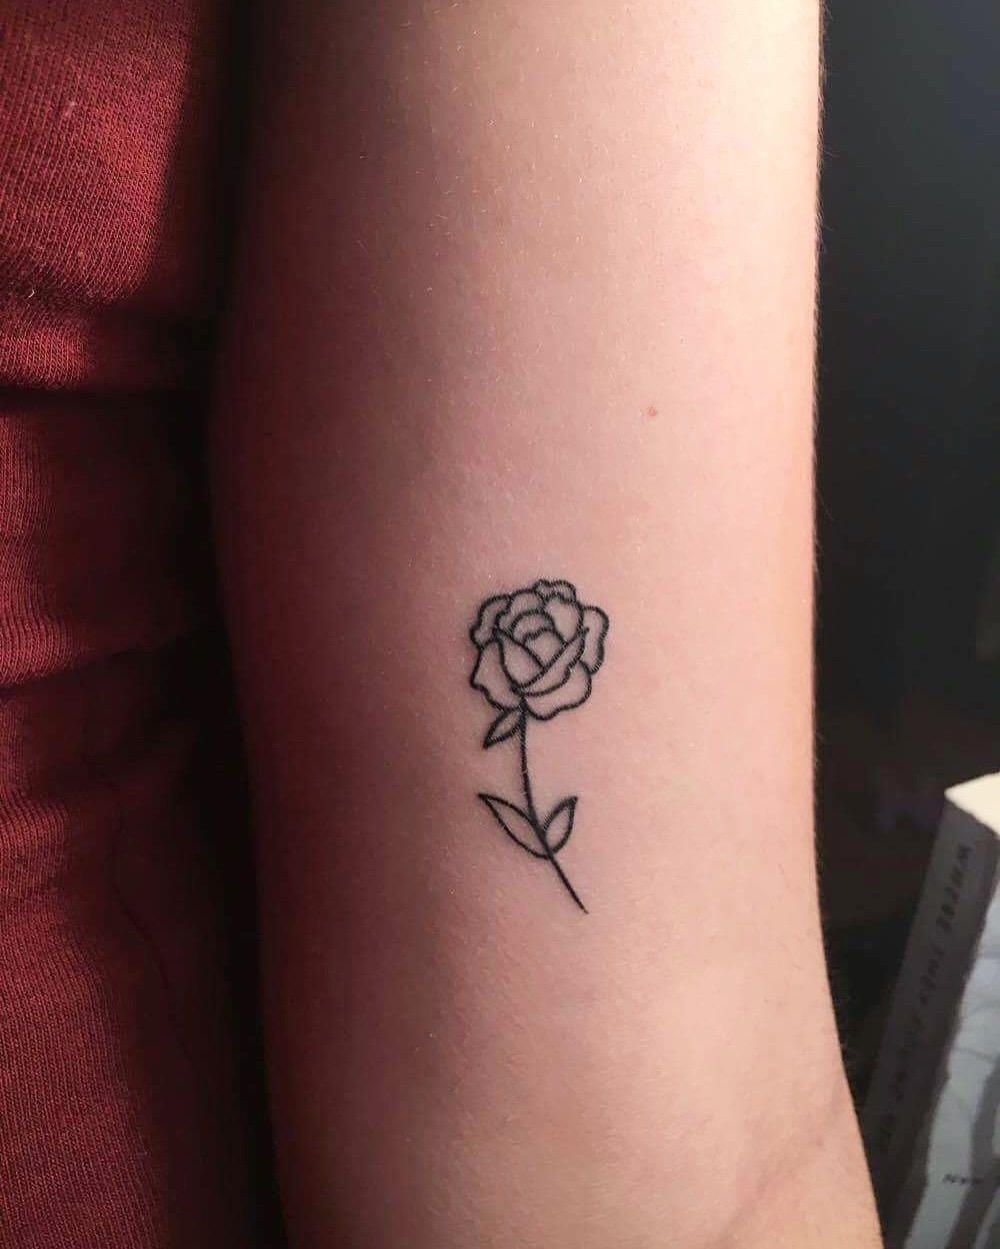 Drawn rose tiny rose Tattoos and Pinterest lines Small